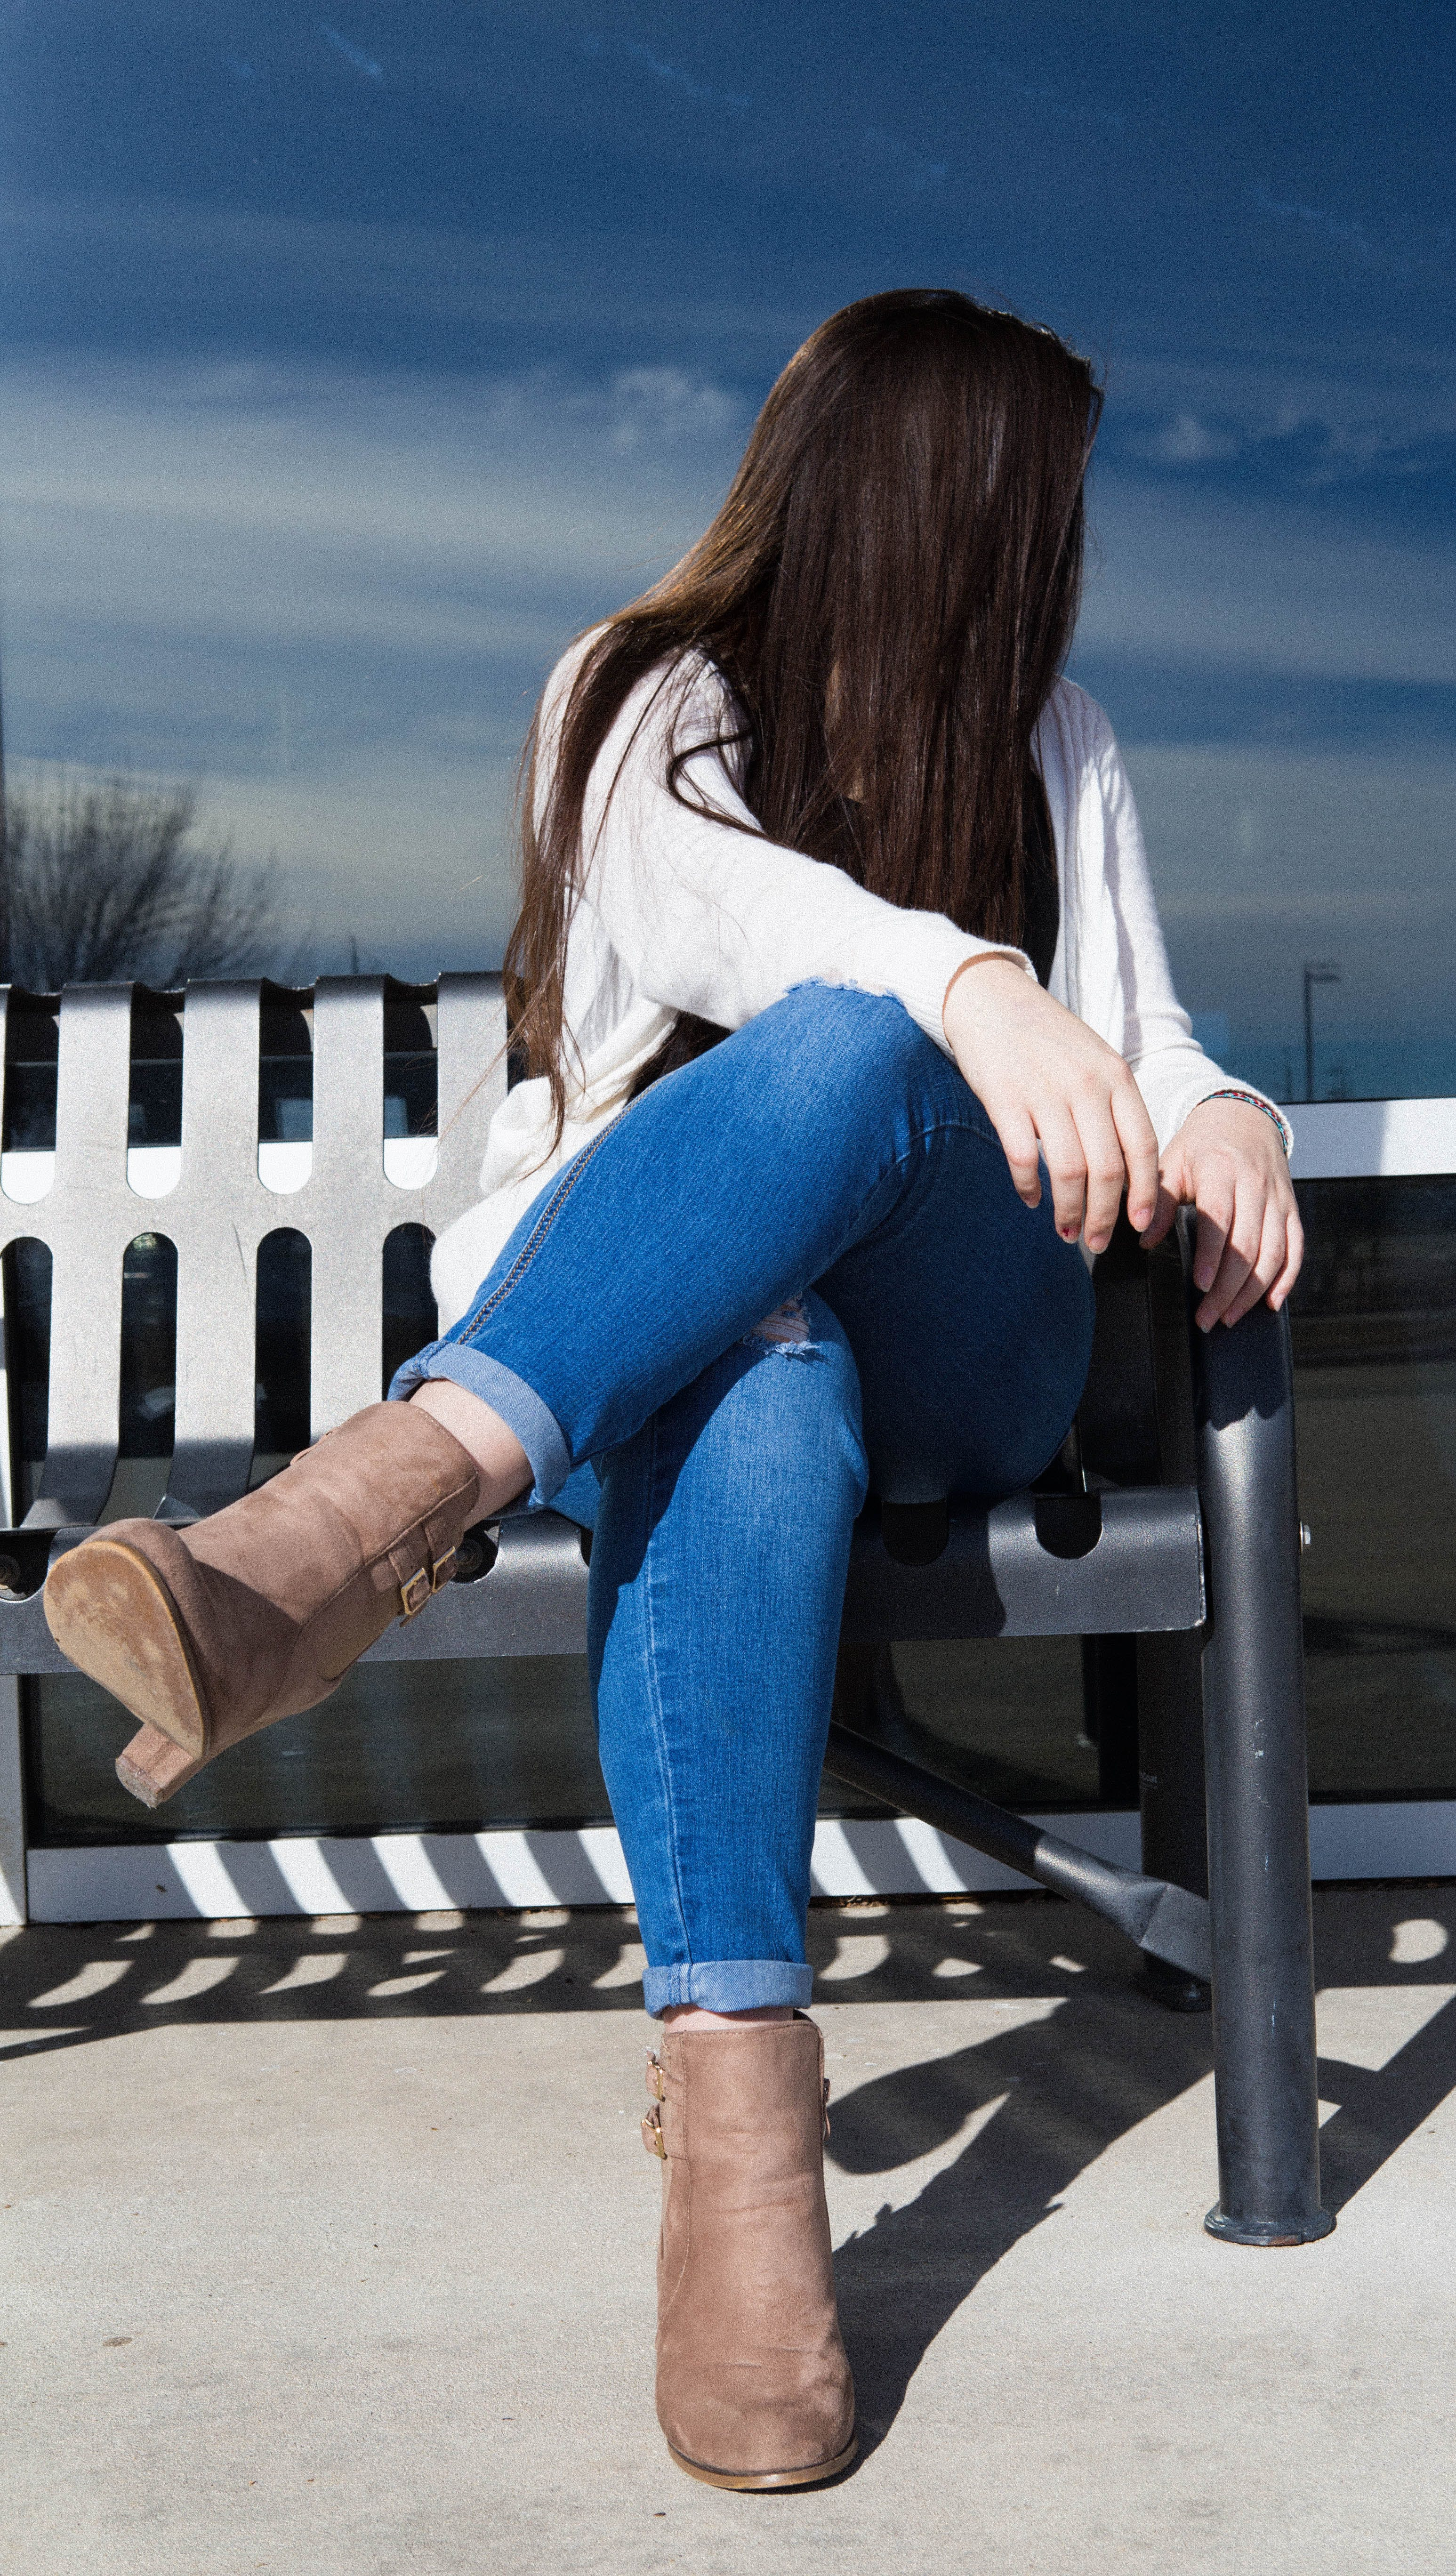 Free stock photo of bench, boots, denim, girl